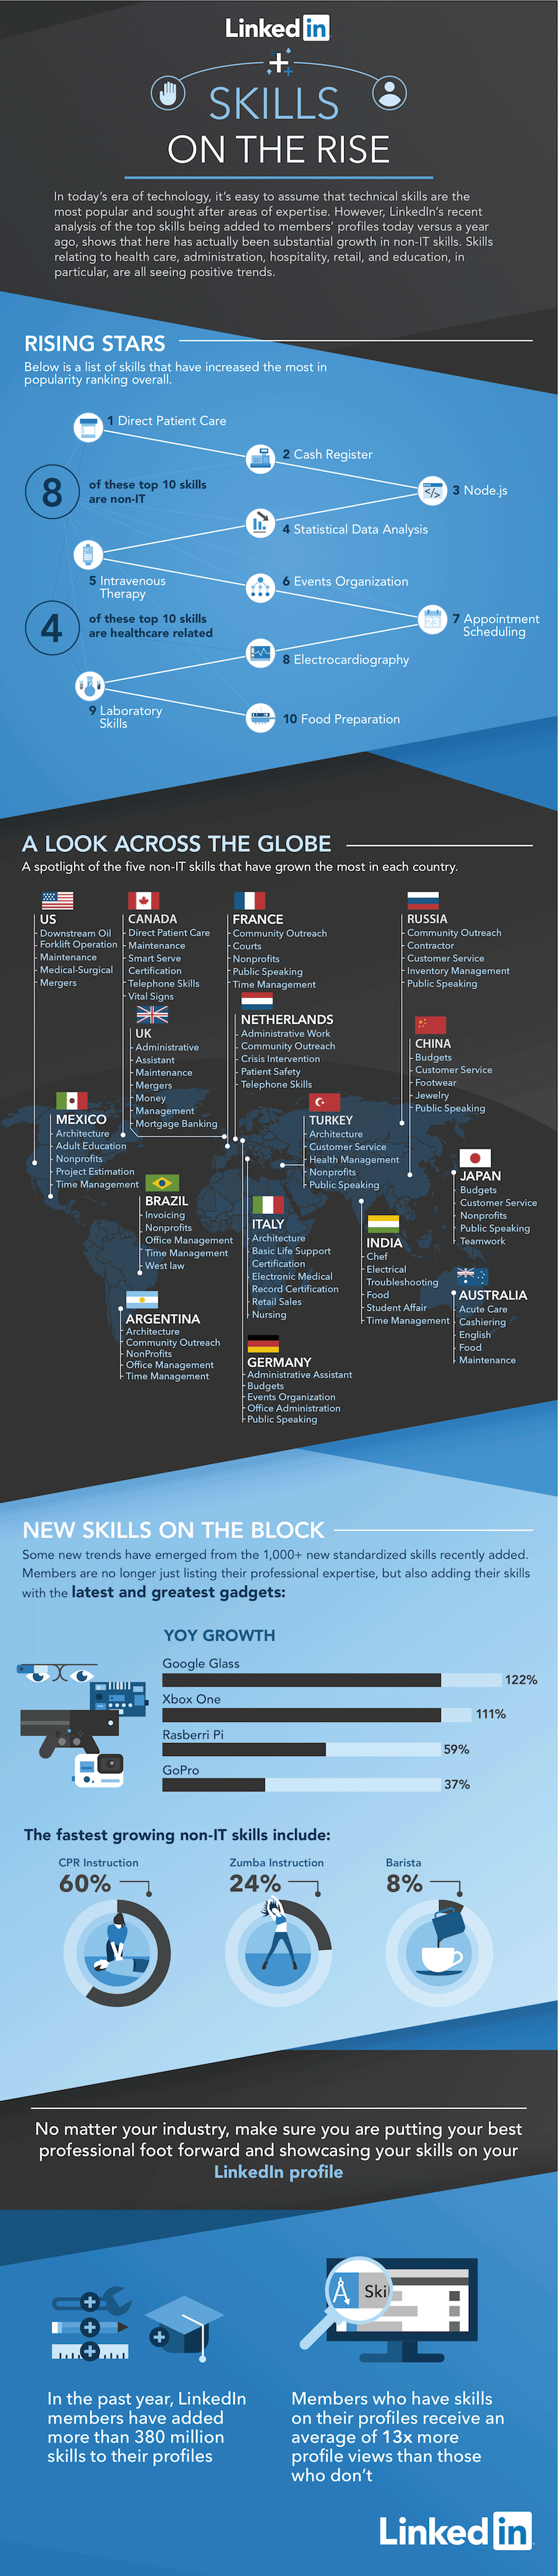 linkedin reveals non tech jobs skills that are on the rise